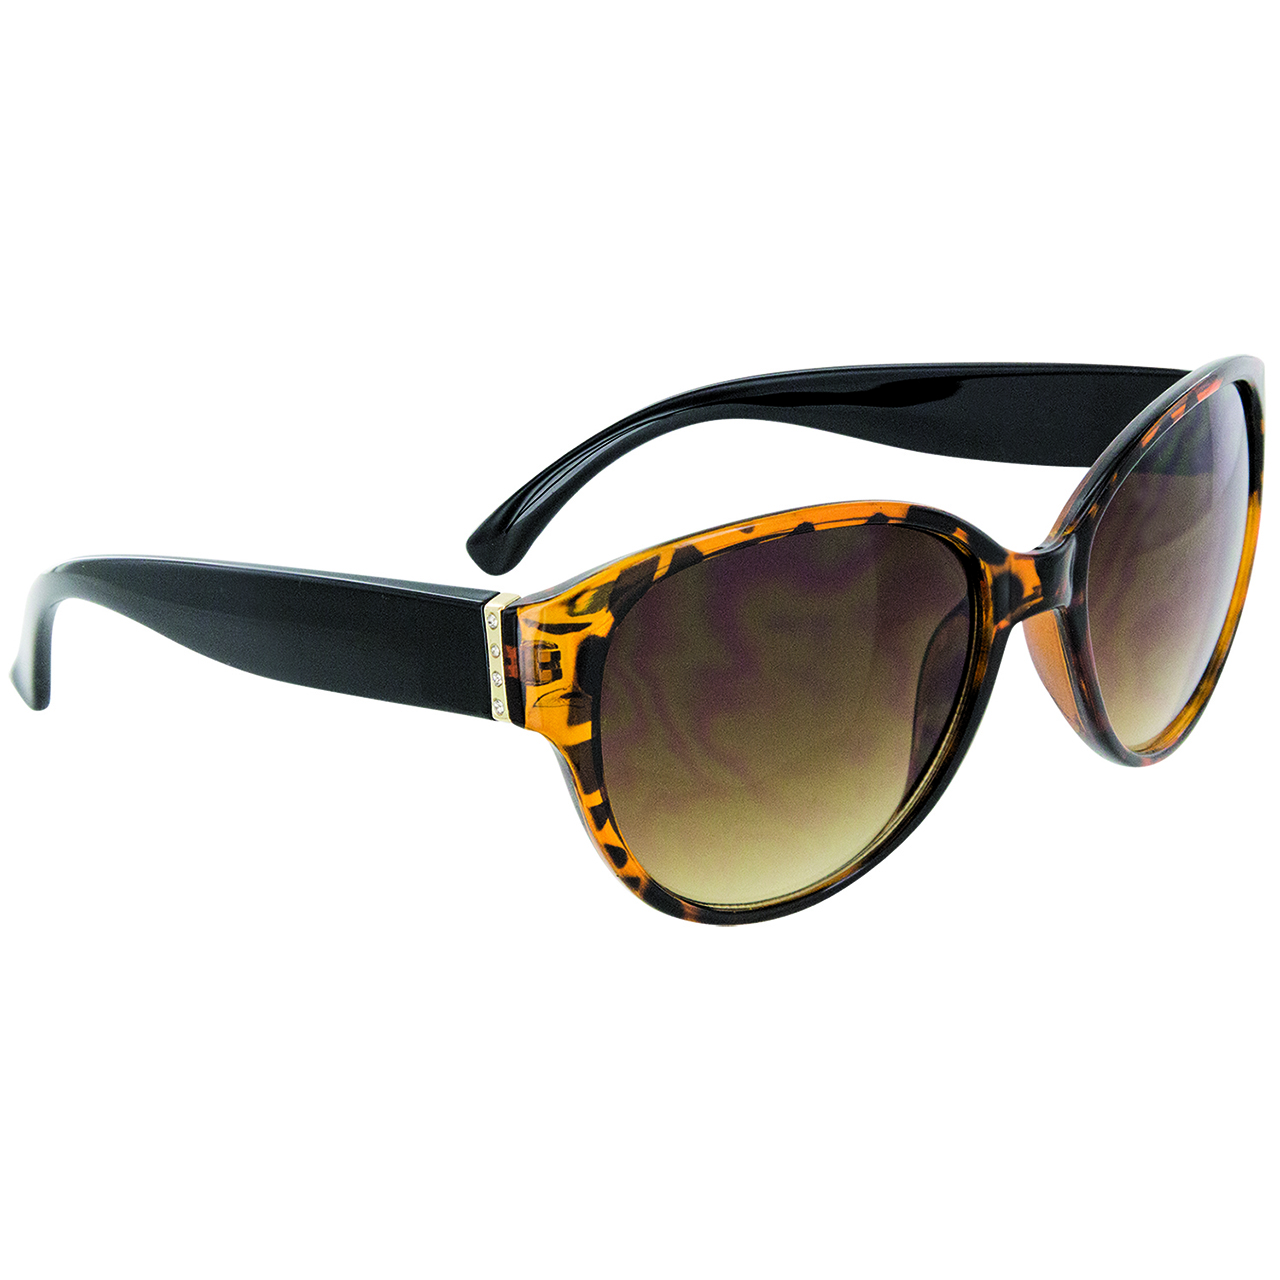 7a80e2b7c619 Luxe Collection Sunlily Sunglasses - Tanga